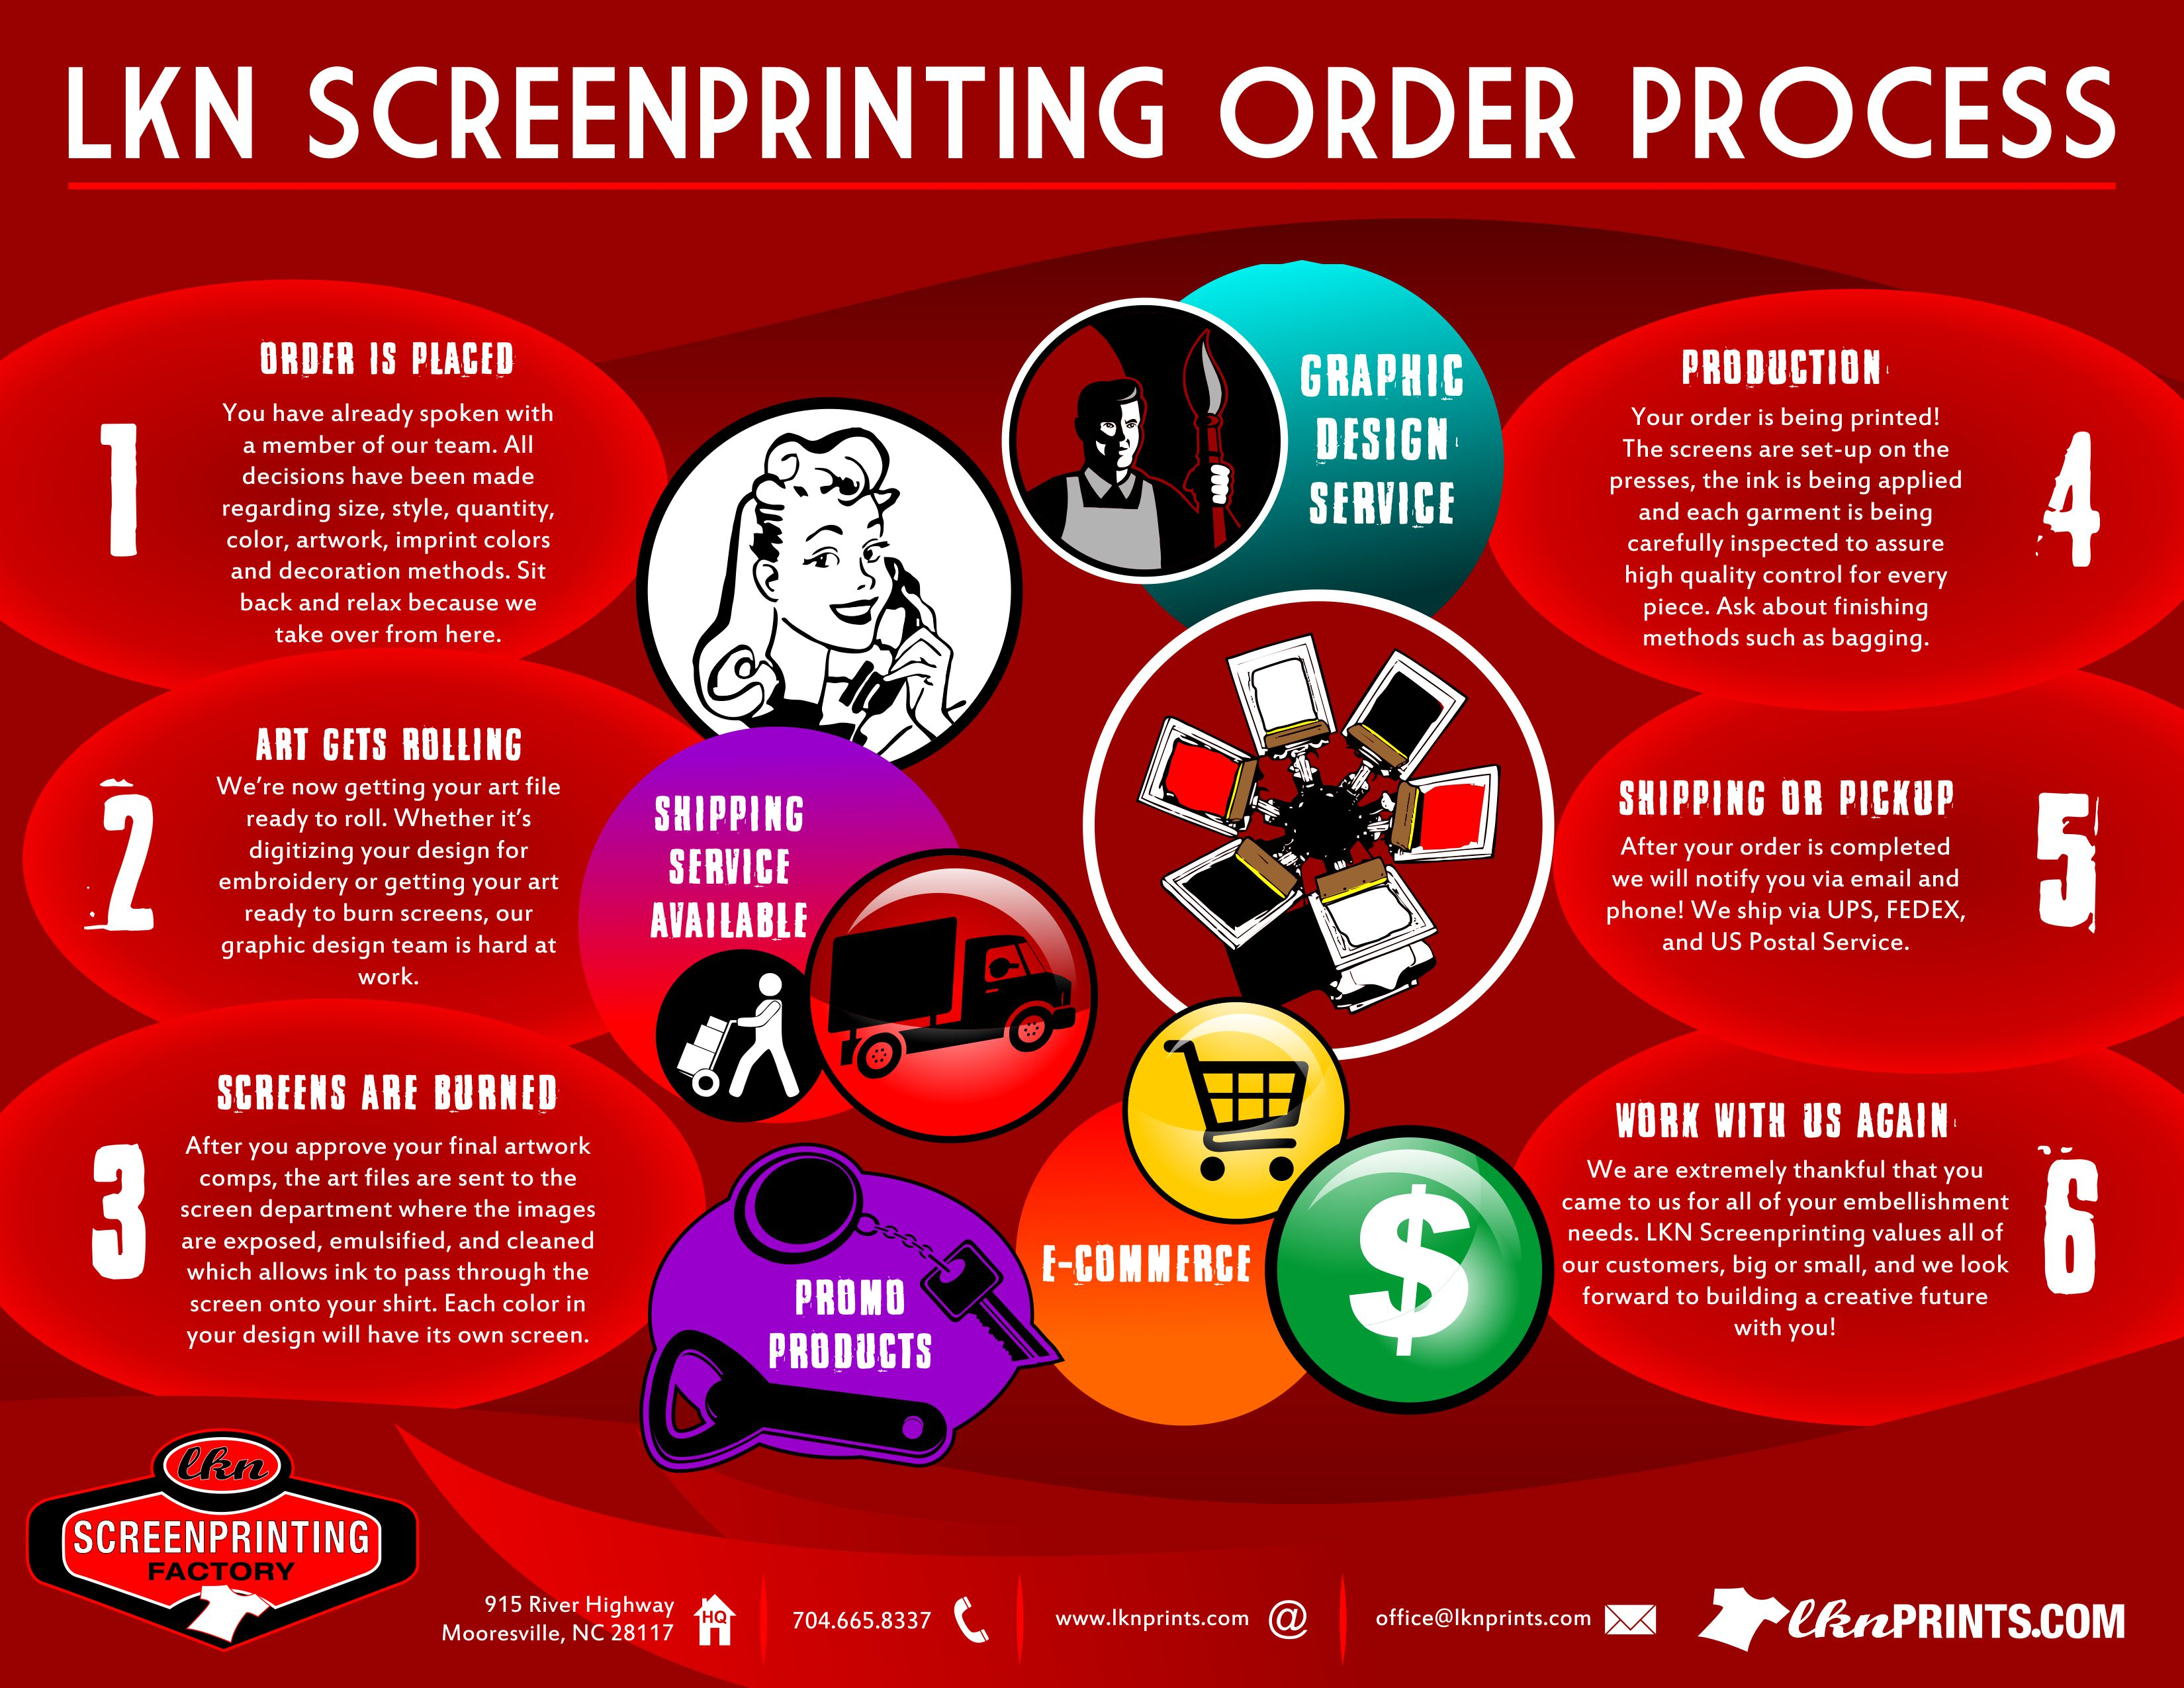 lkn prints order process